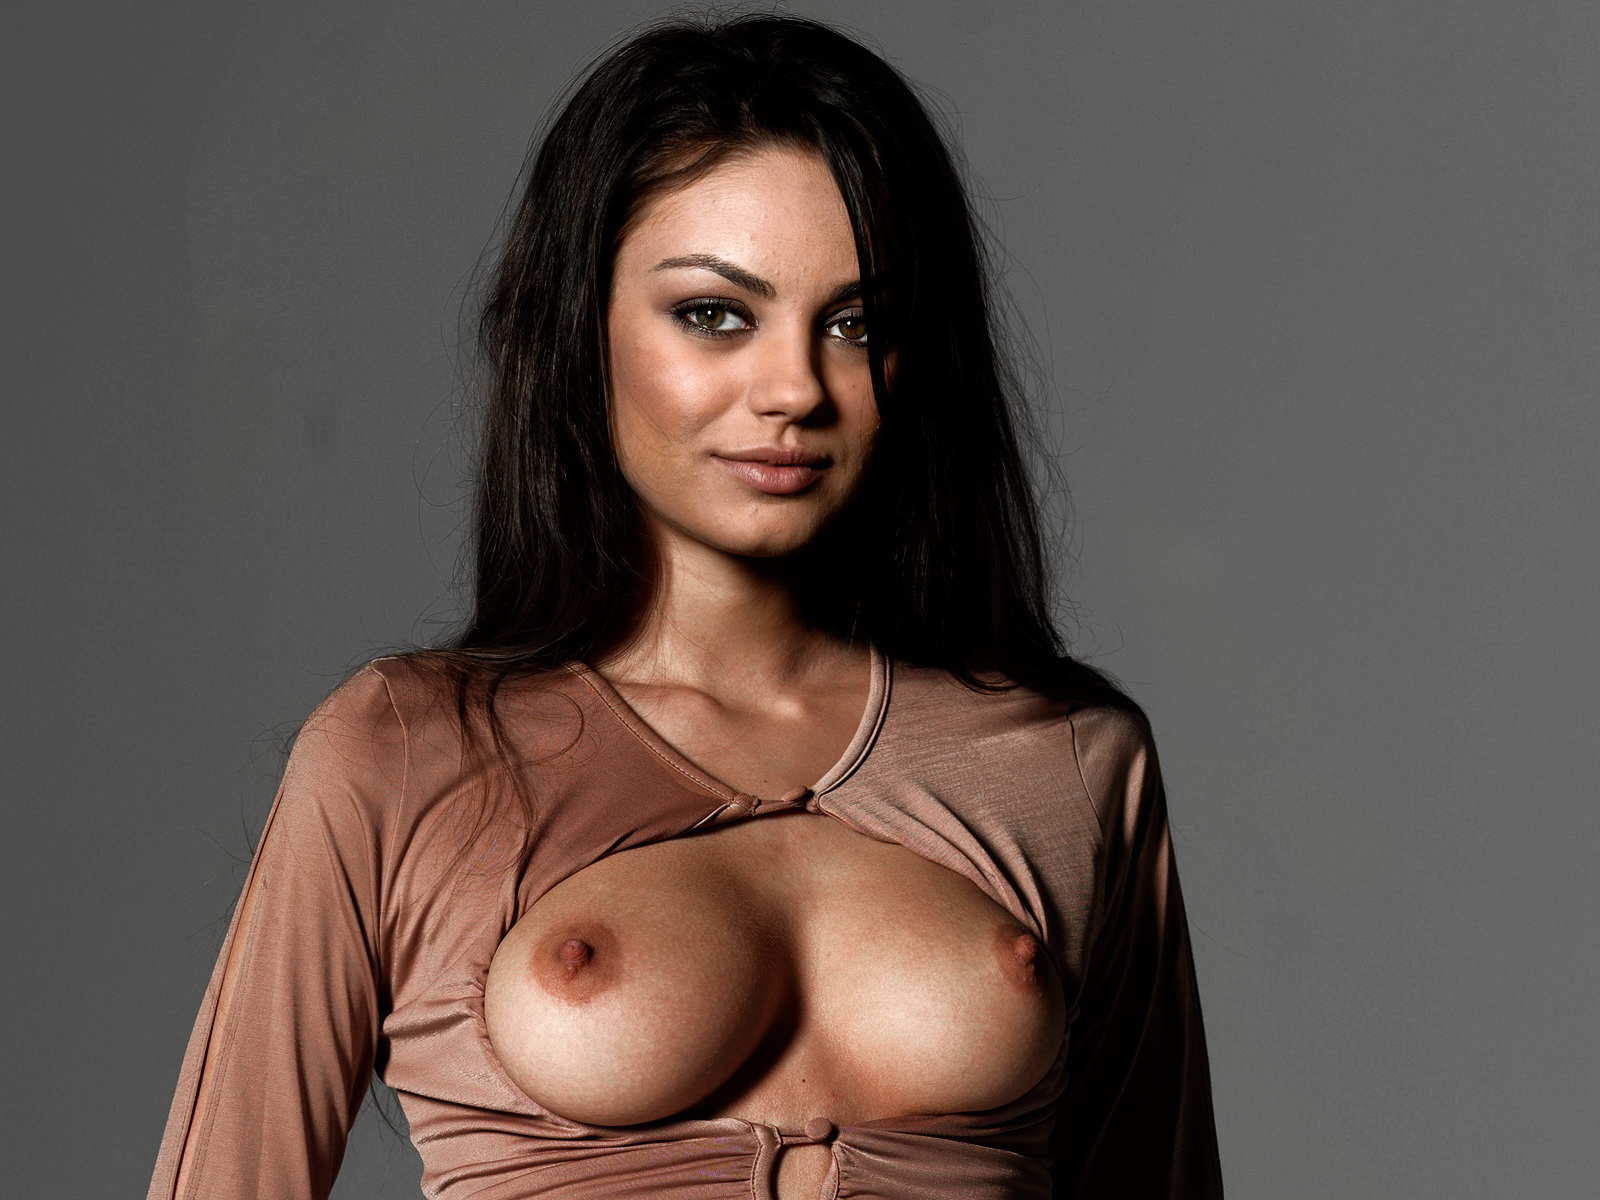 Is So Hot And Sey Some Pictures Pics Here I Love Mila Kunis Pussy